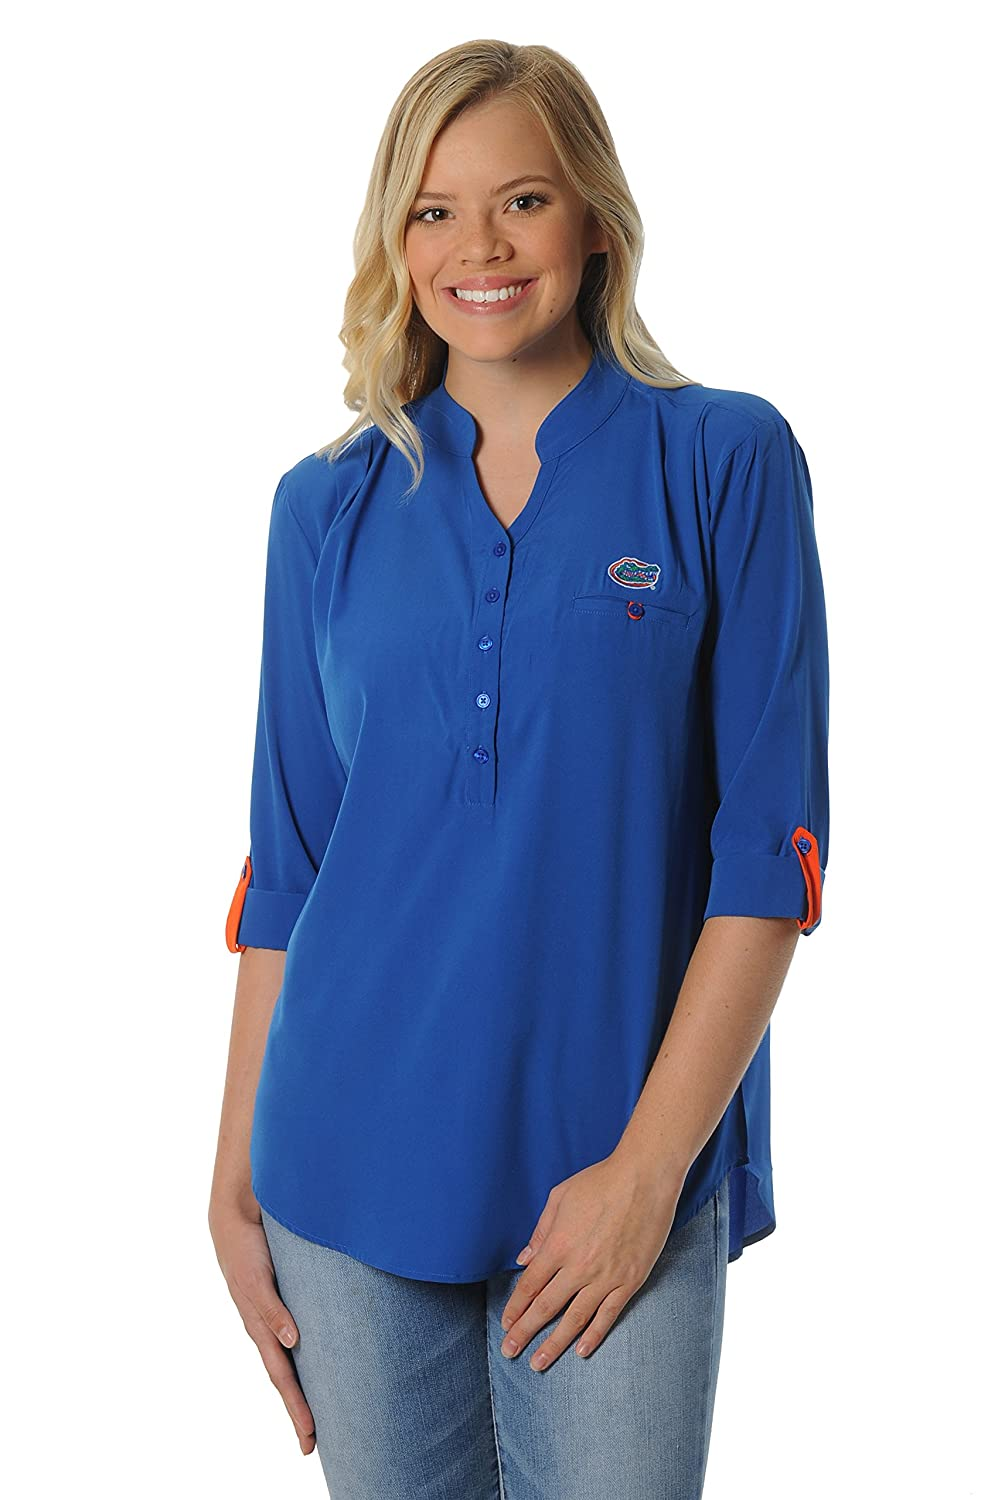 NCAA Womens Button Down Tunic